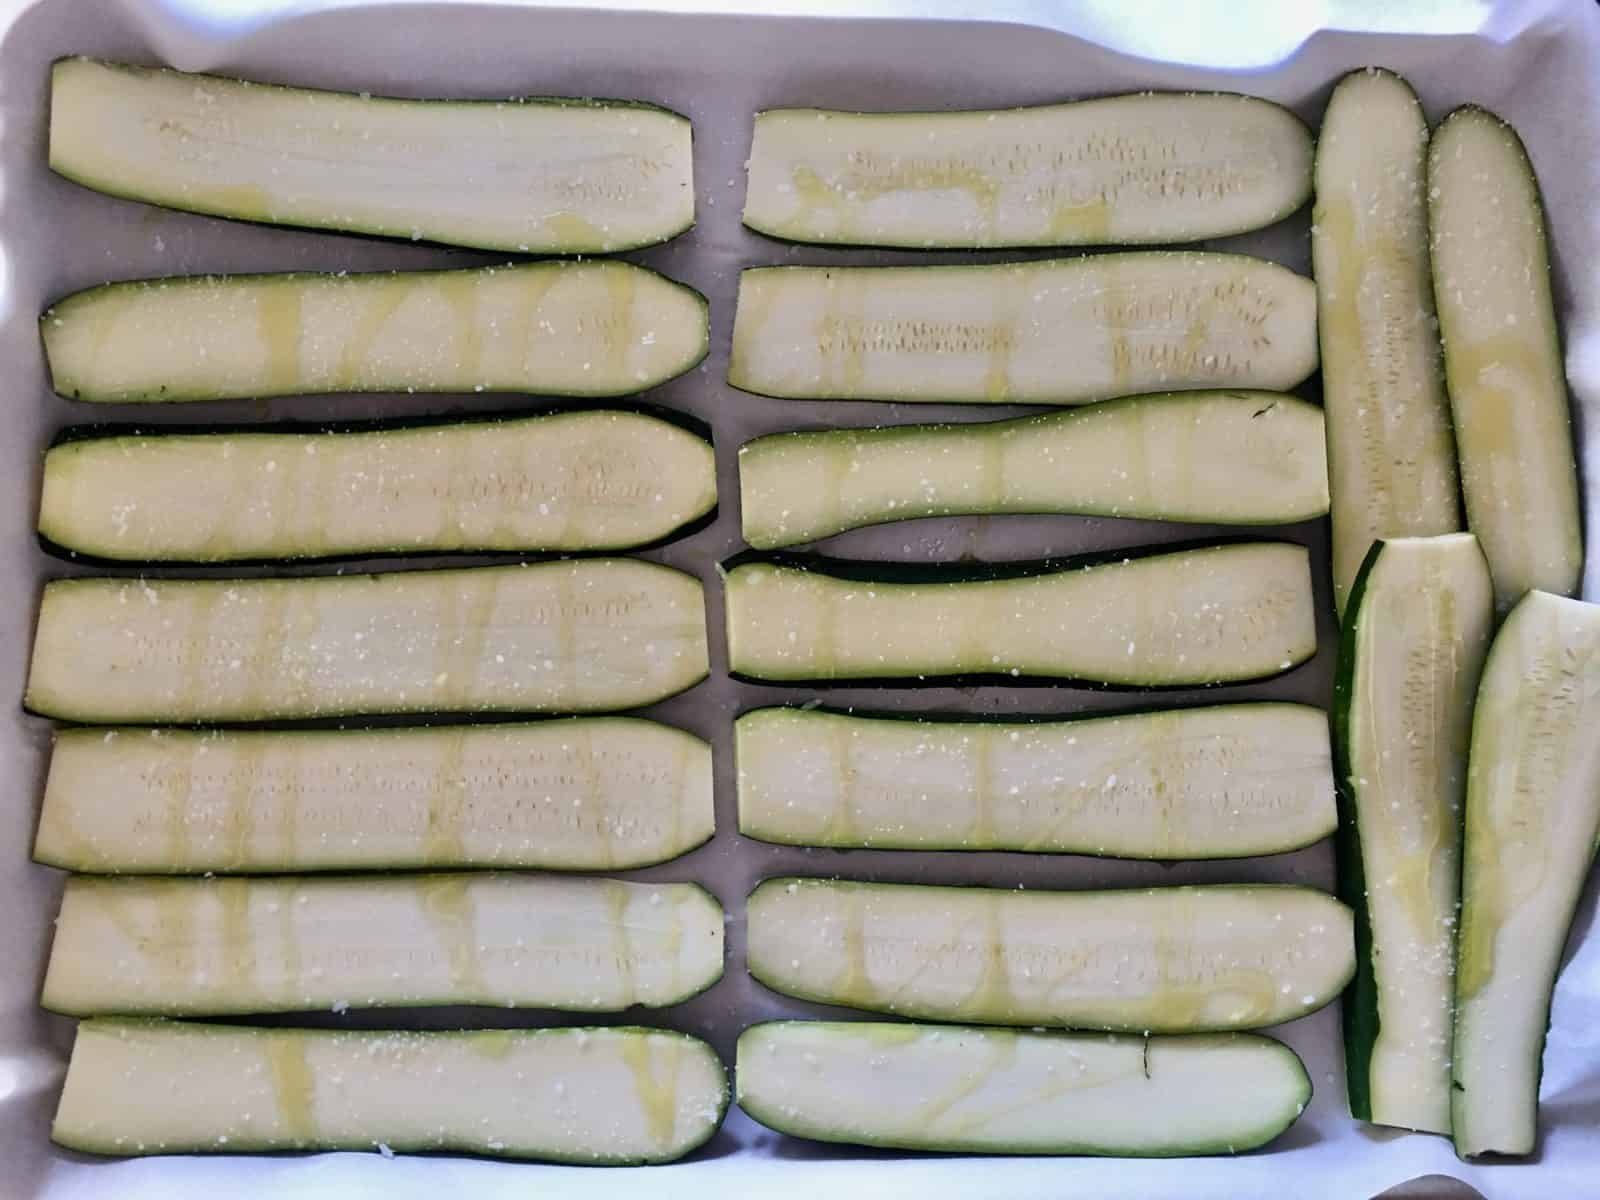 Sliced Zucchini on parchment paper on a baking sheet.